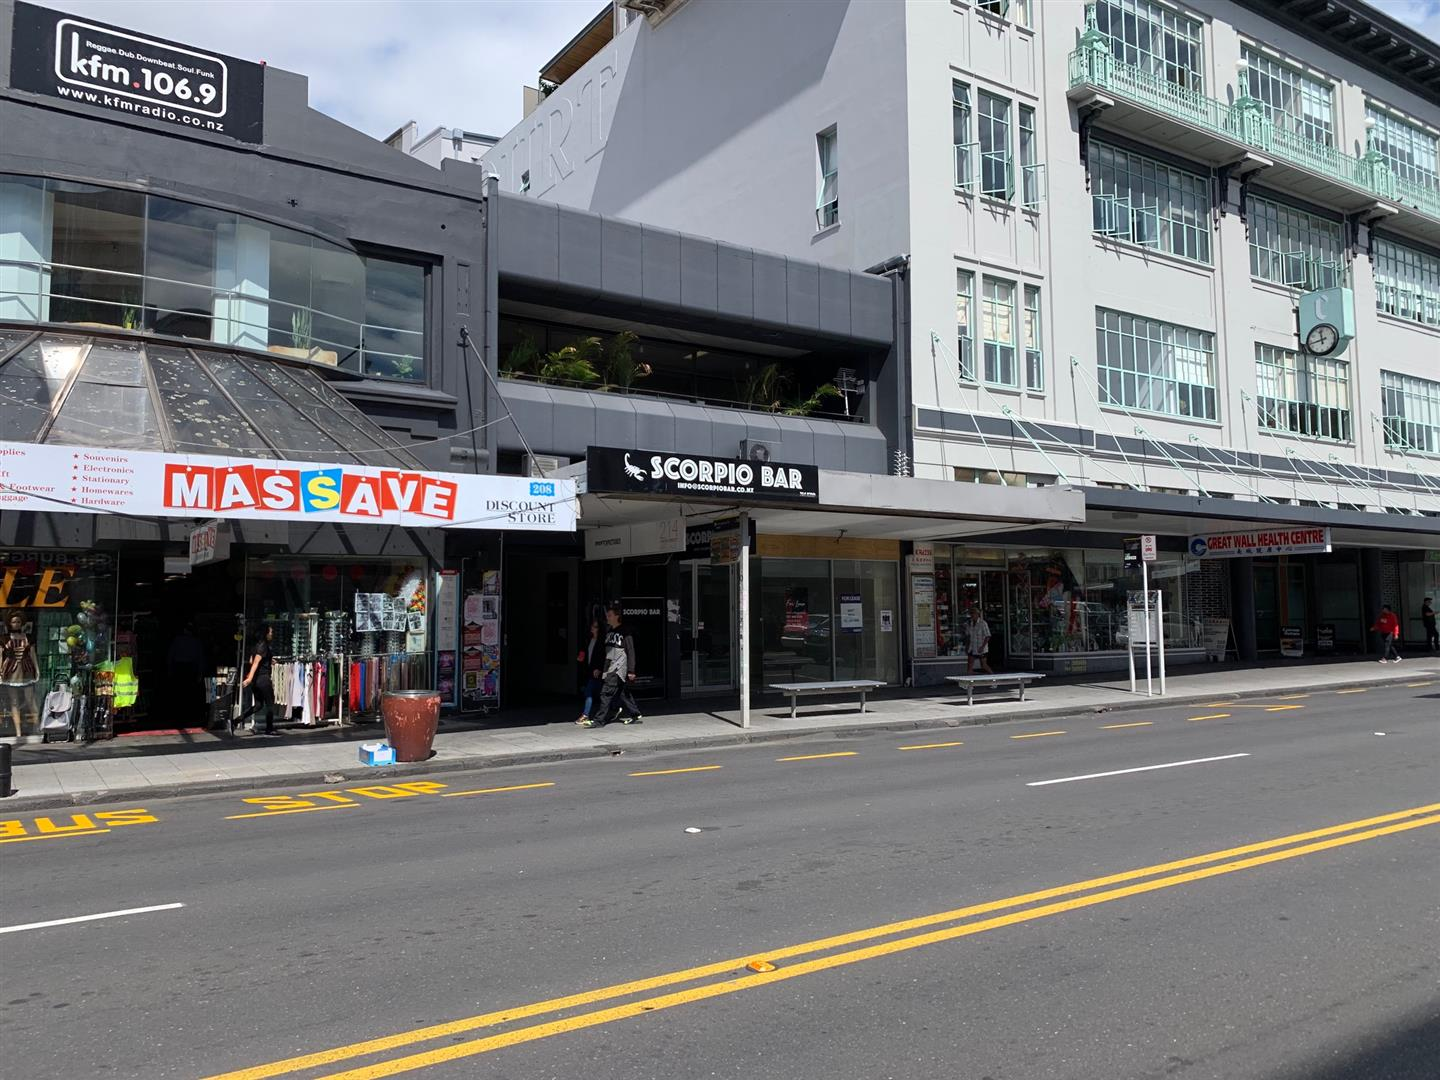 Retail  for Lease Auckland Central